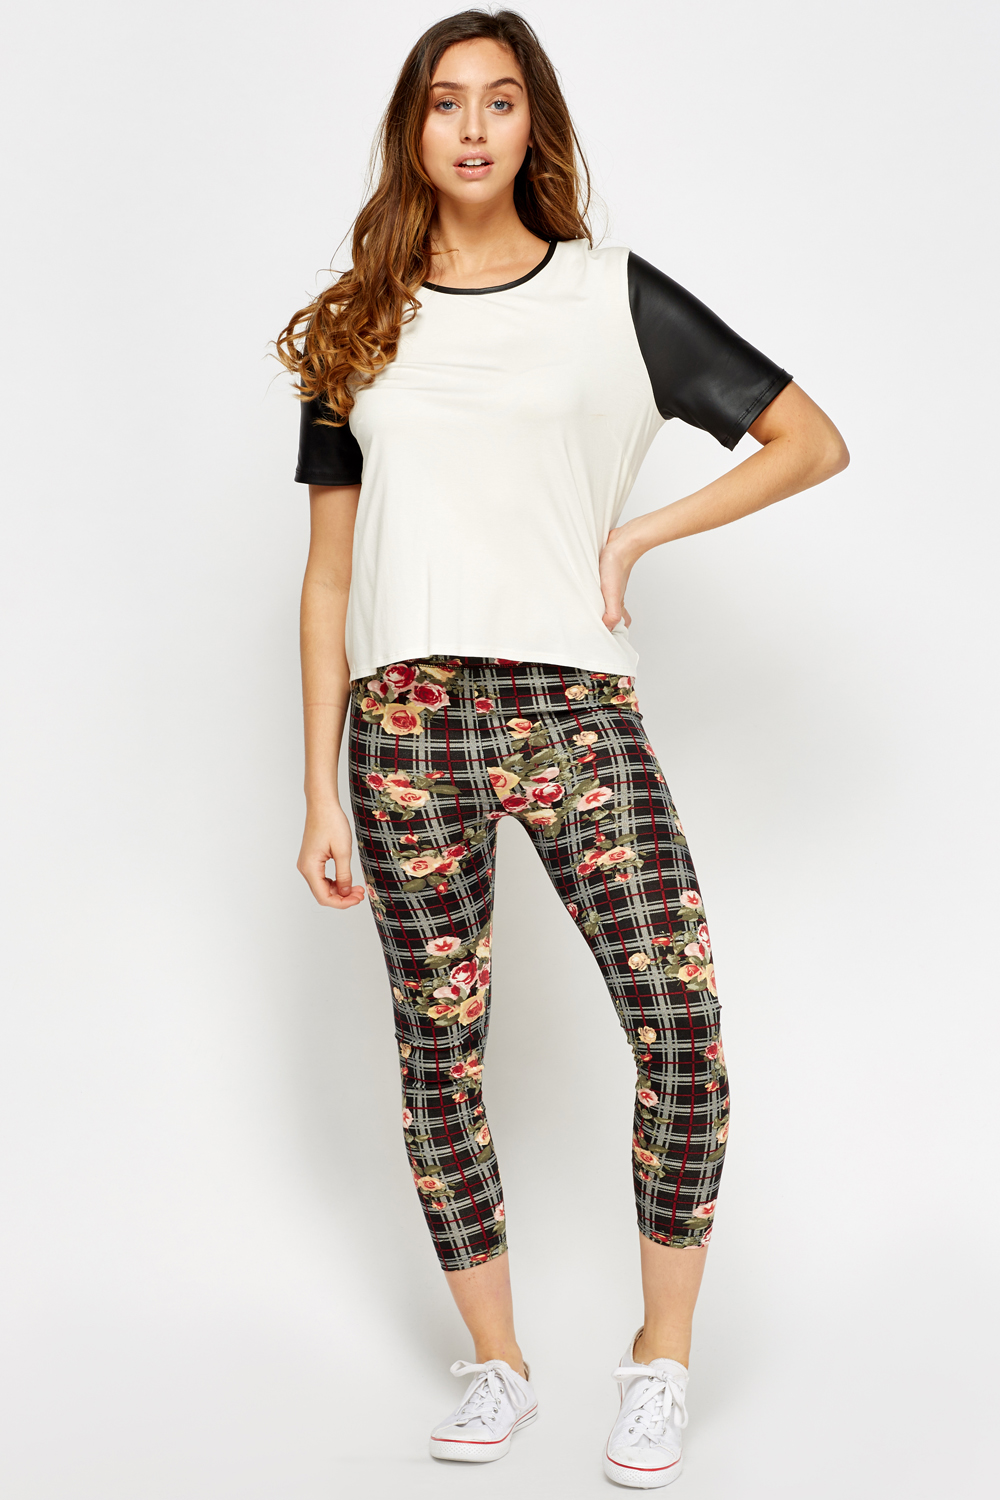 bb00928e0a09 Checked Floral Print Leggings - Just £5